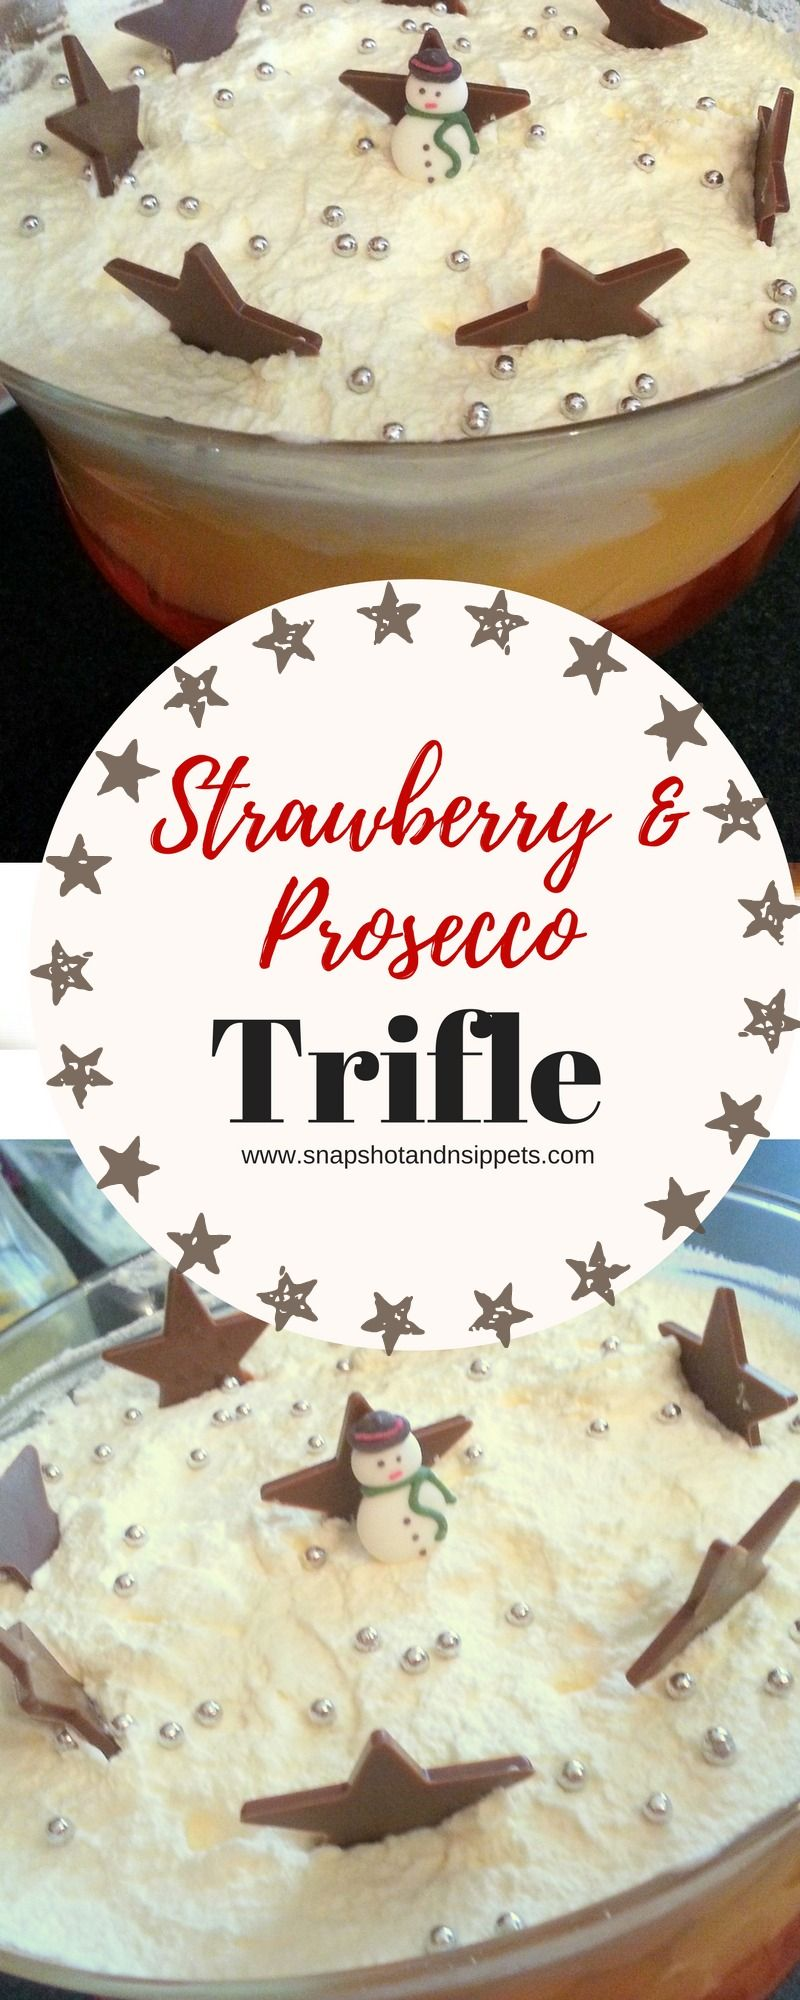 Strawberry and Processo Trifle | Recipe | Chocolate stars, Trifles ...